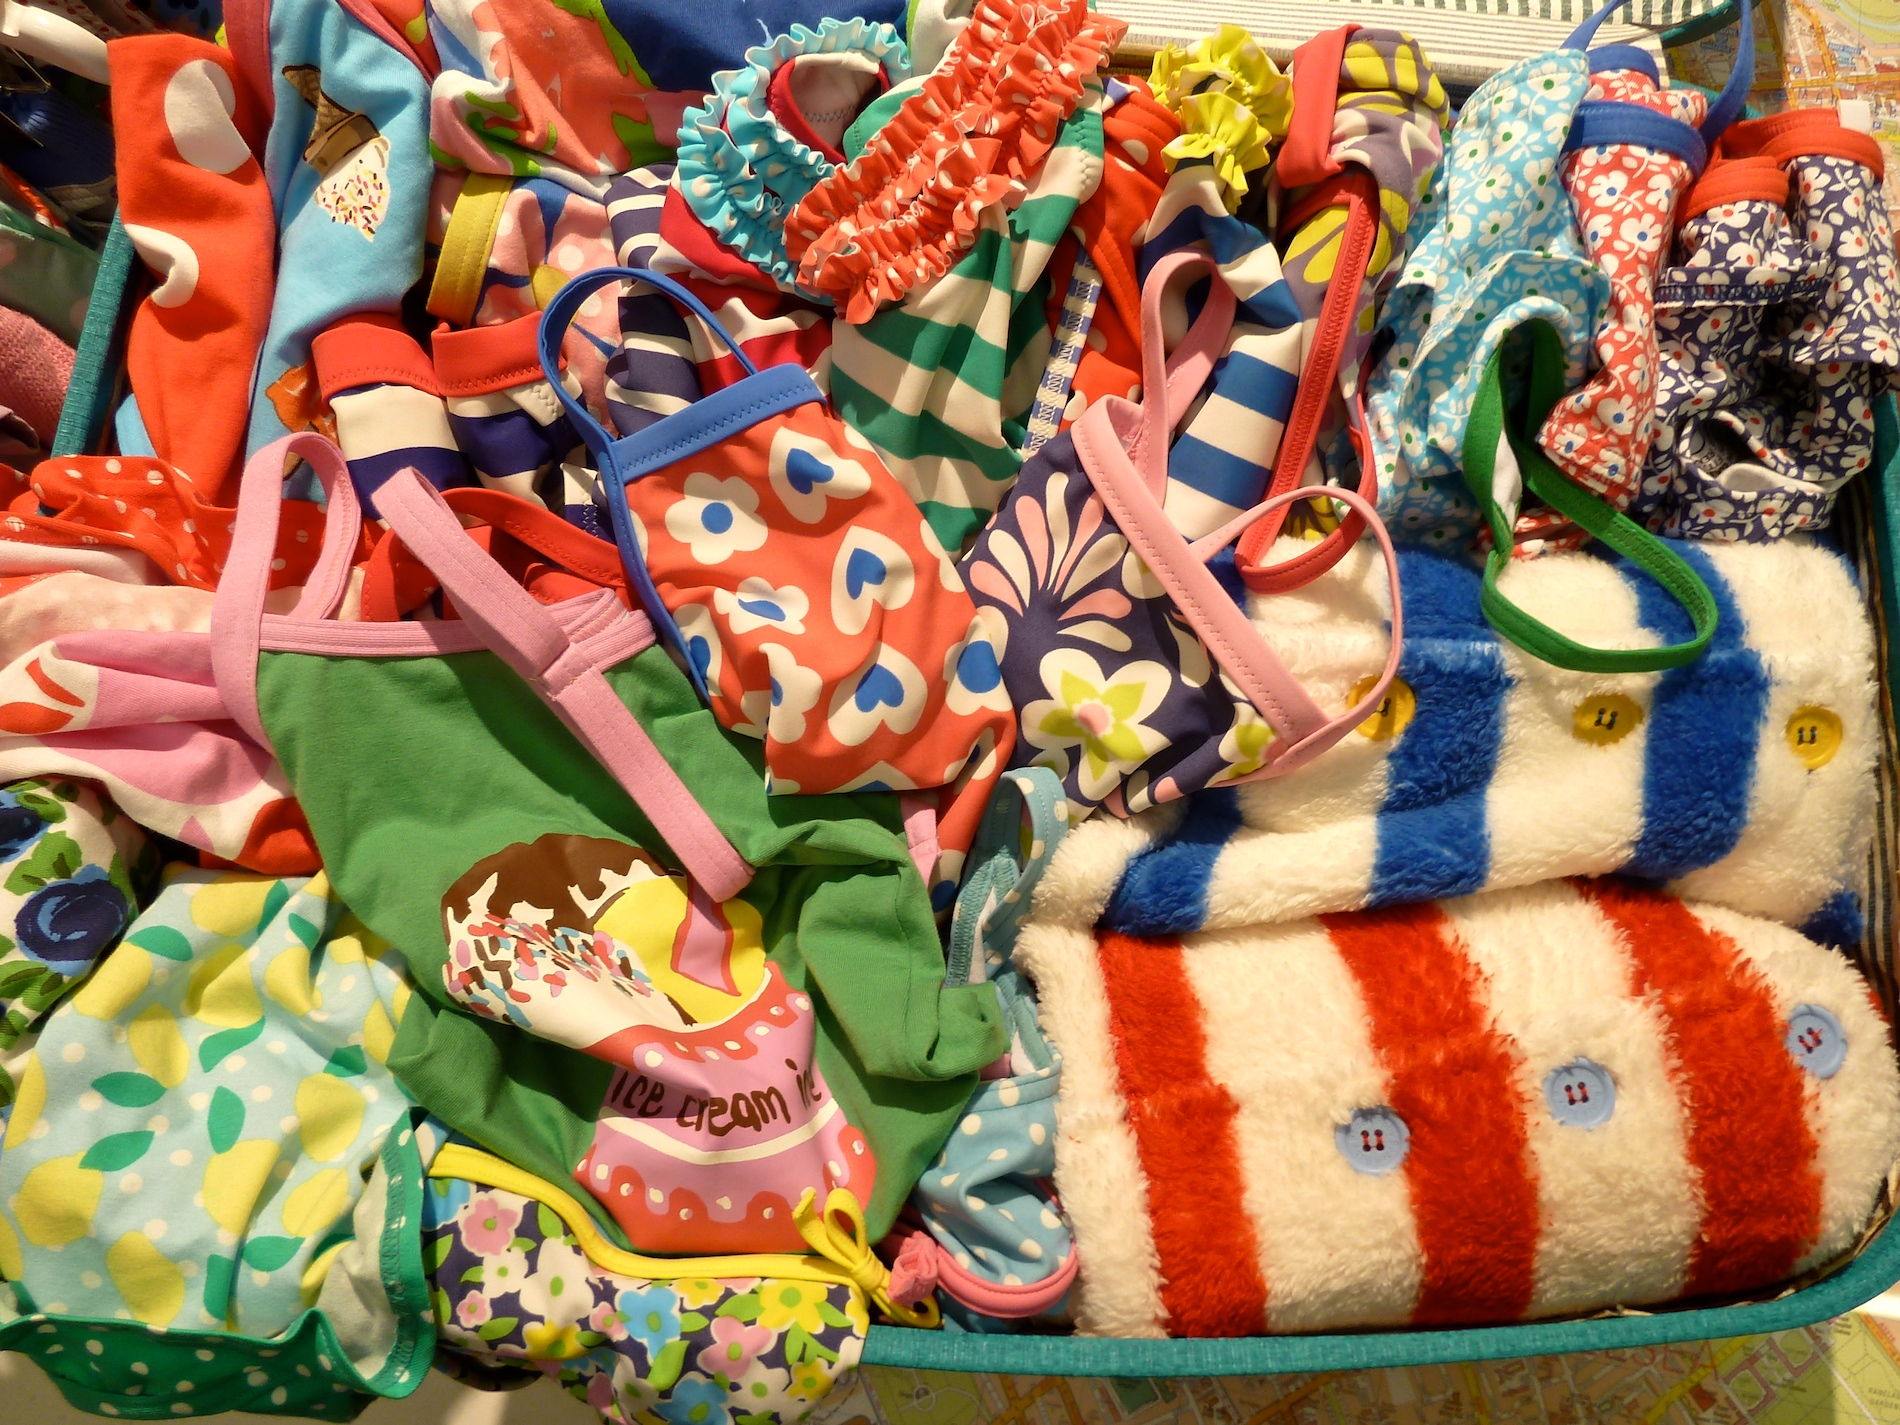 One well stuffed suitcase with Mini Boden kids swimwear and towels for summer 2012